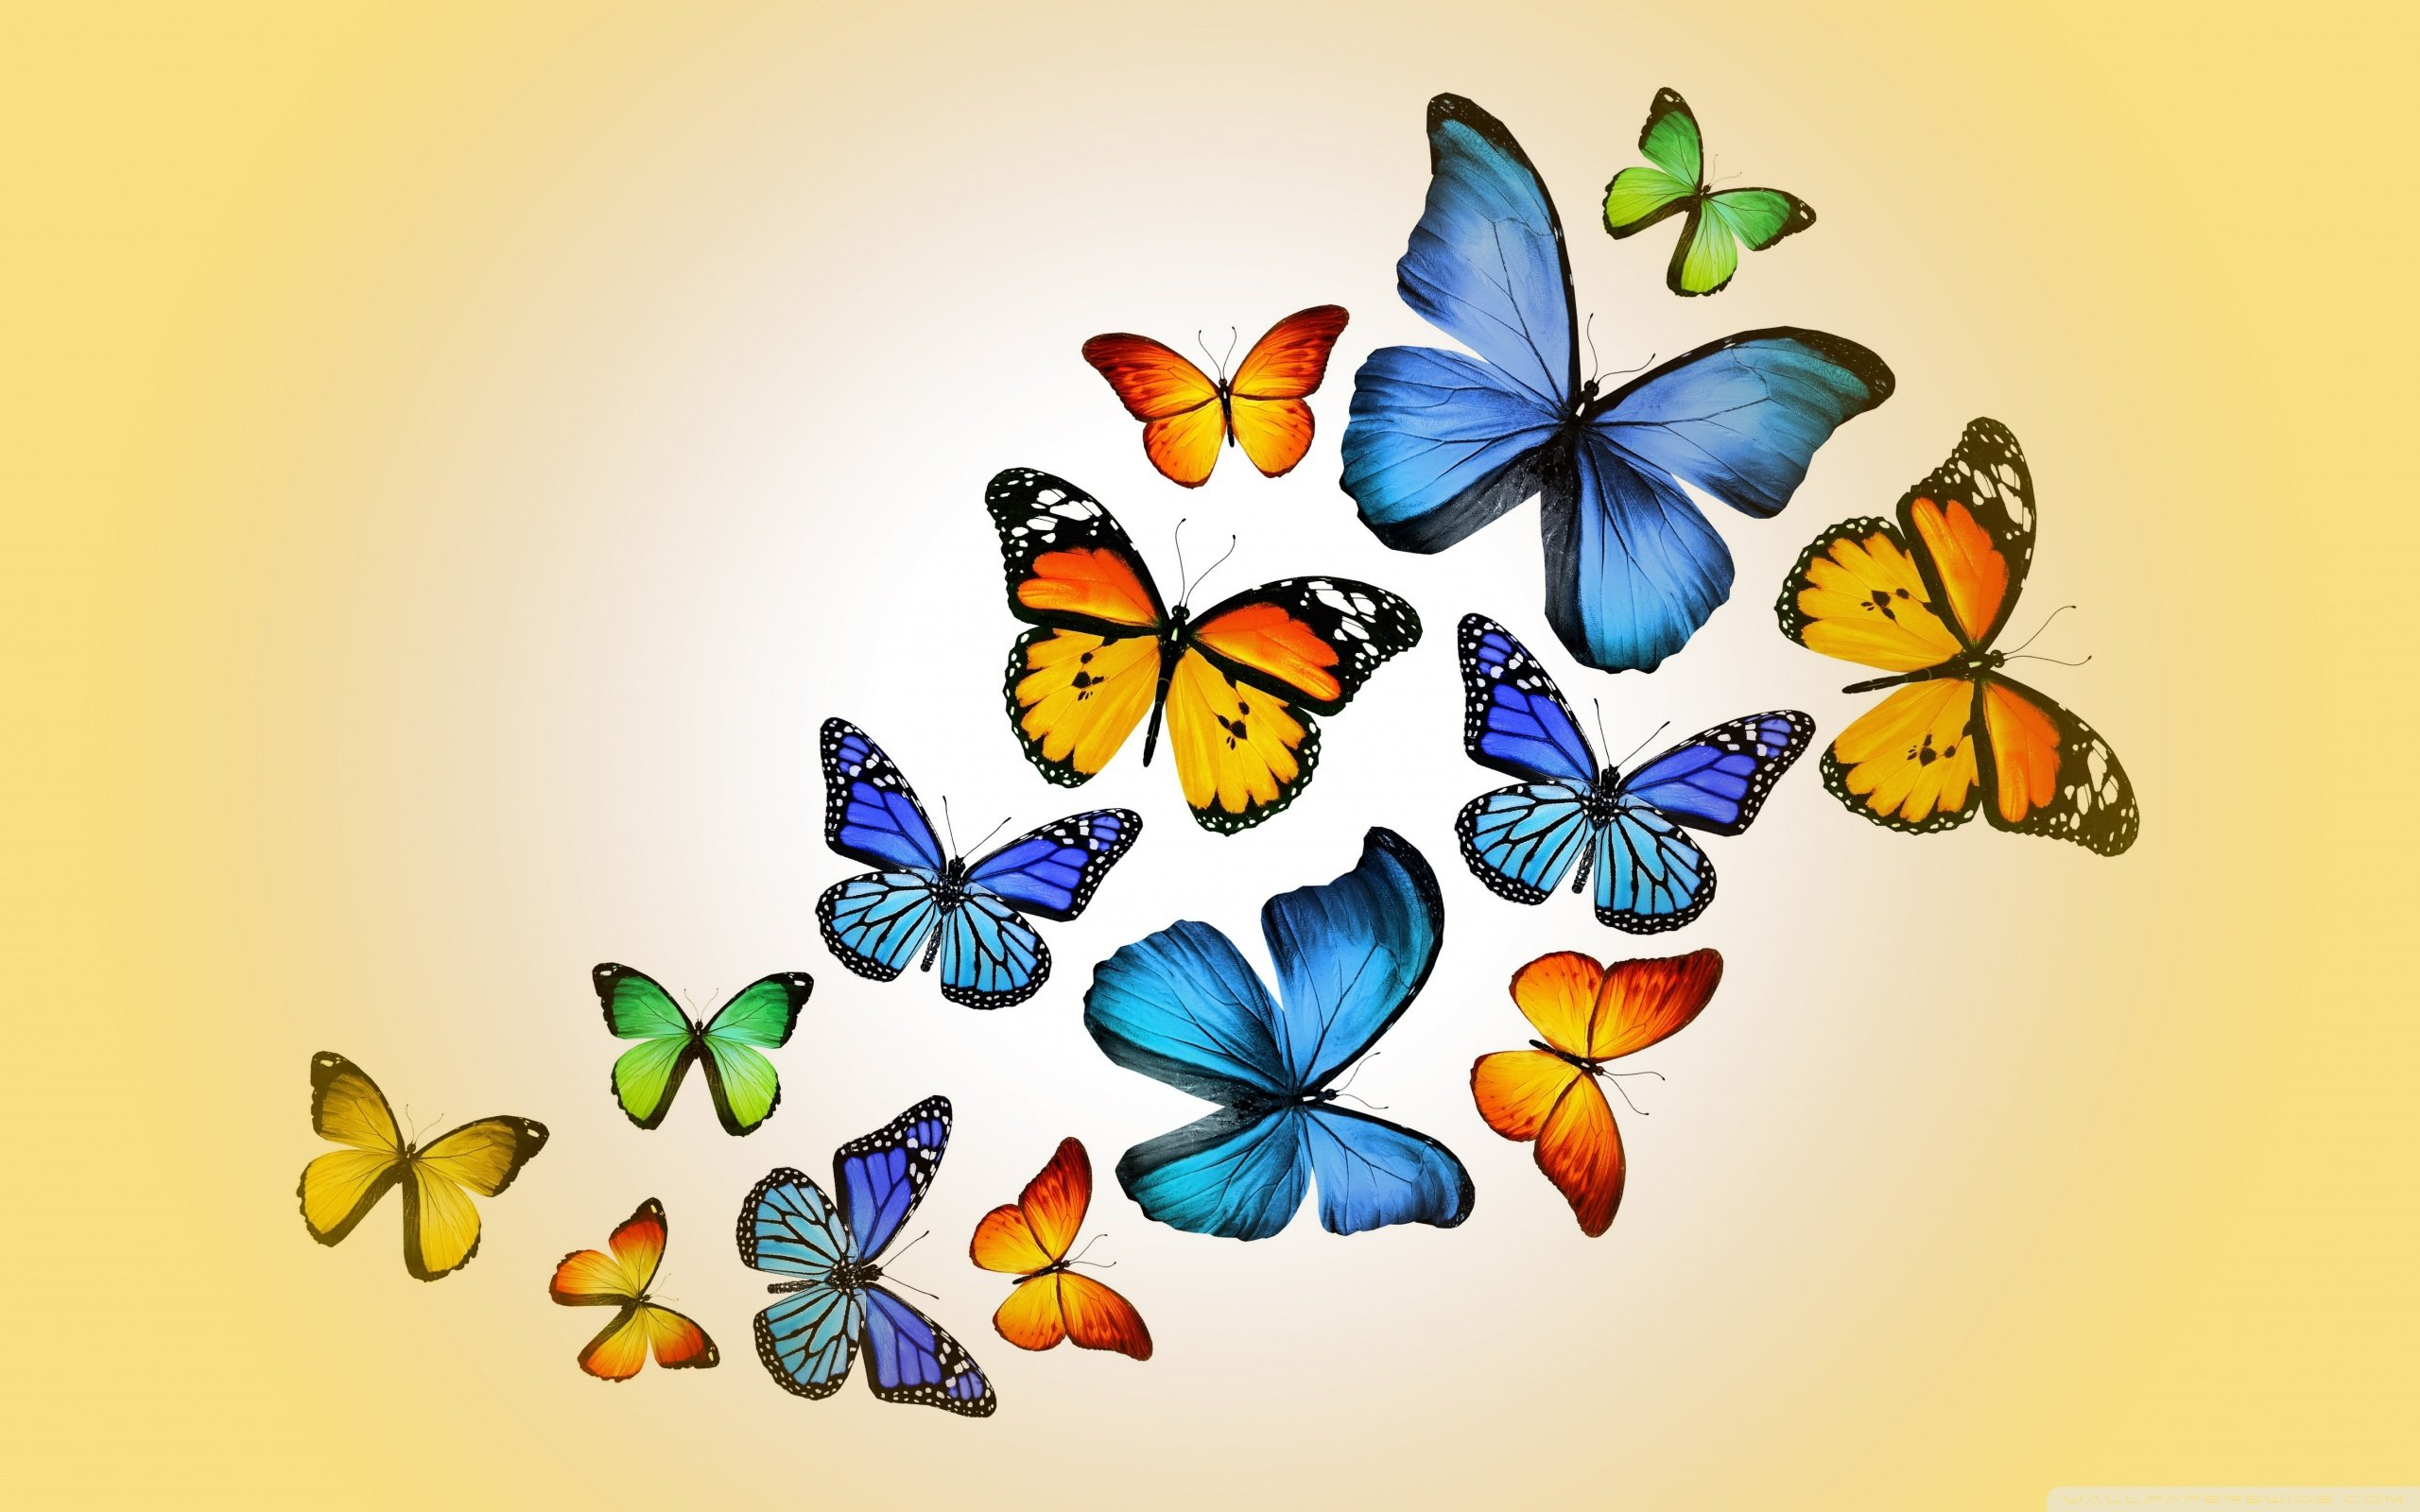 Butterflies 2 Wallpaper 2560 1600 Psychic Readings By Ange